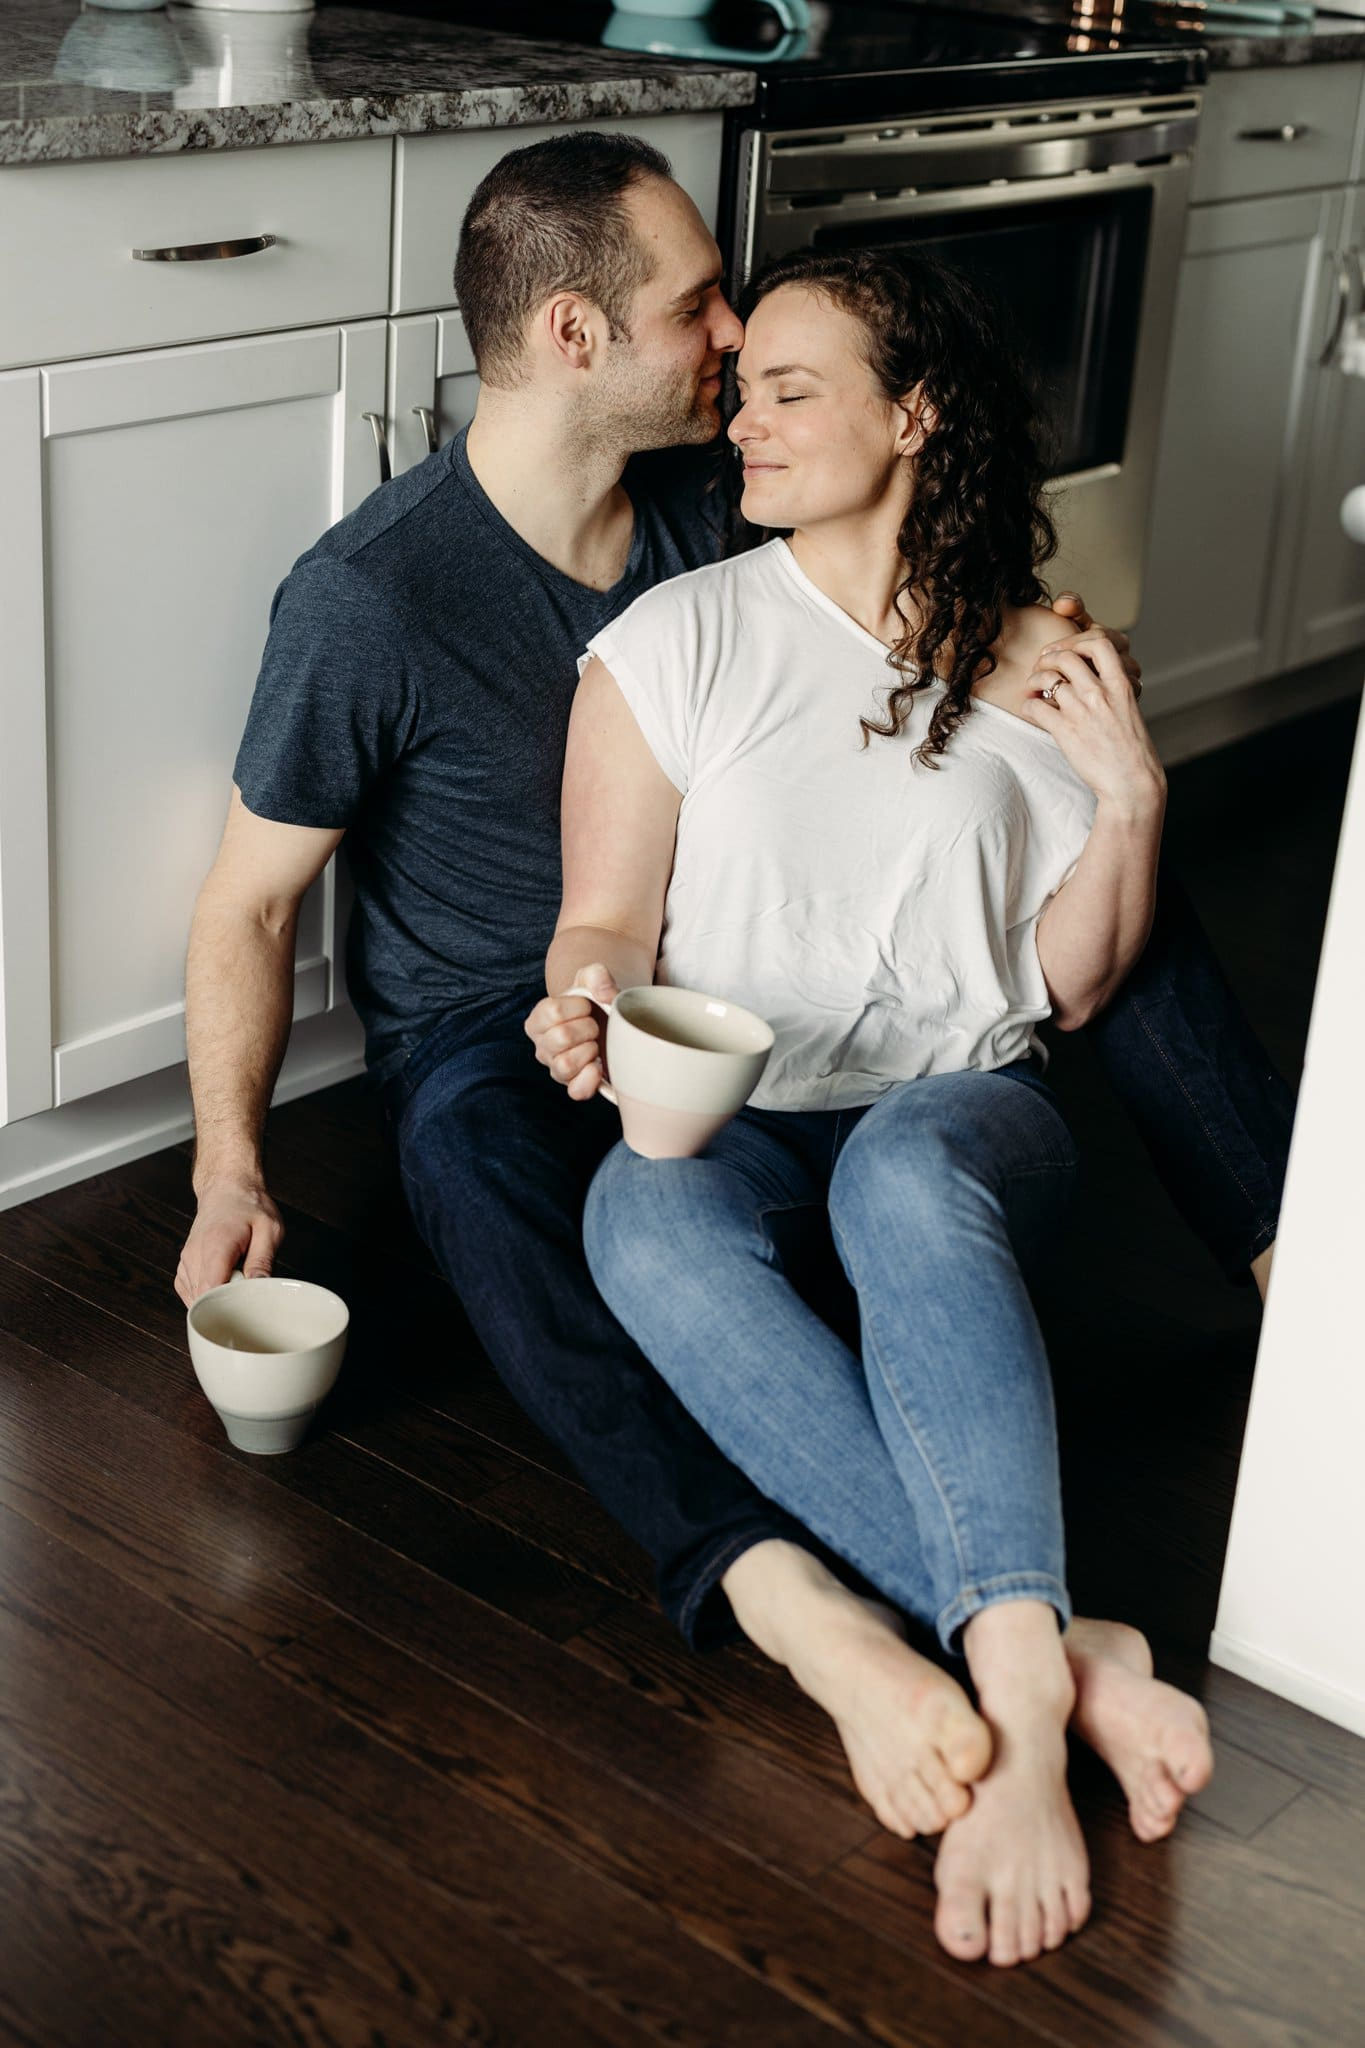 Ashley Daphne Photography Calgary Couple Wedding Photographer In Home Lifestyle Photography Session Engagement Photos_0063.jpg